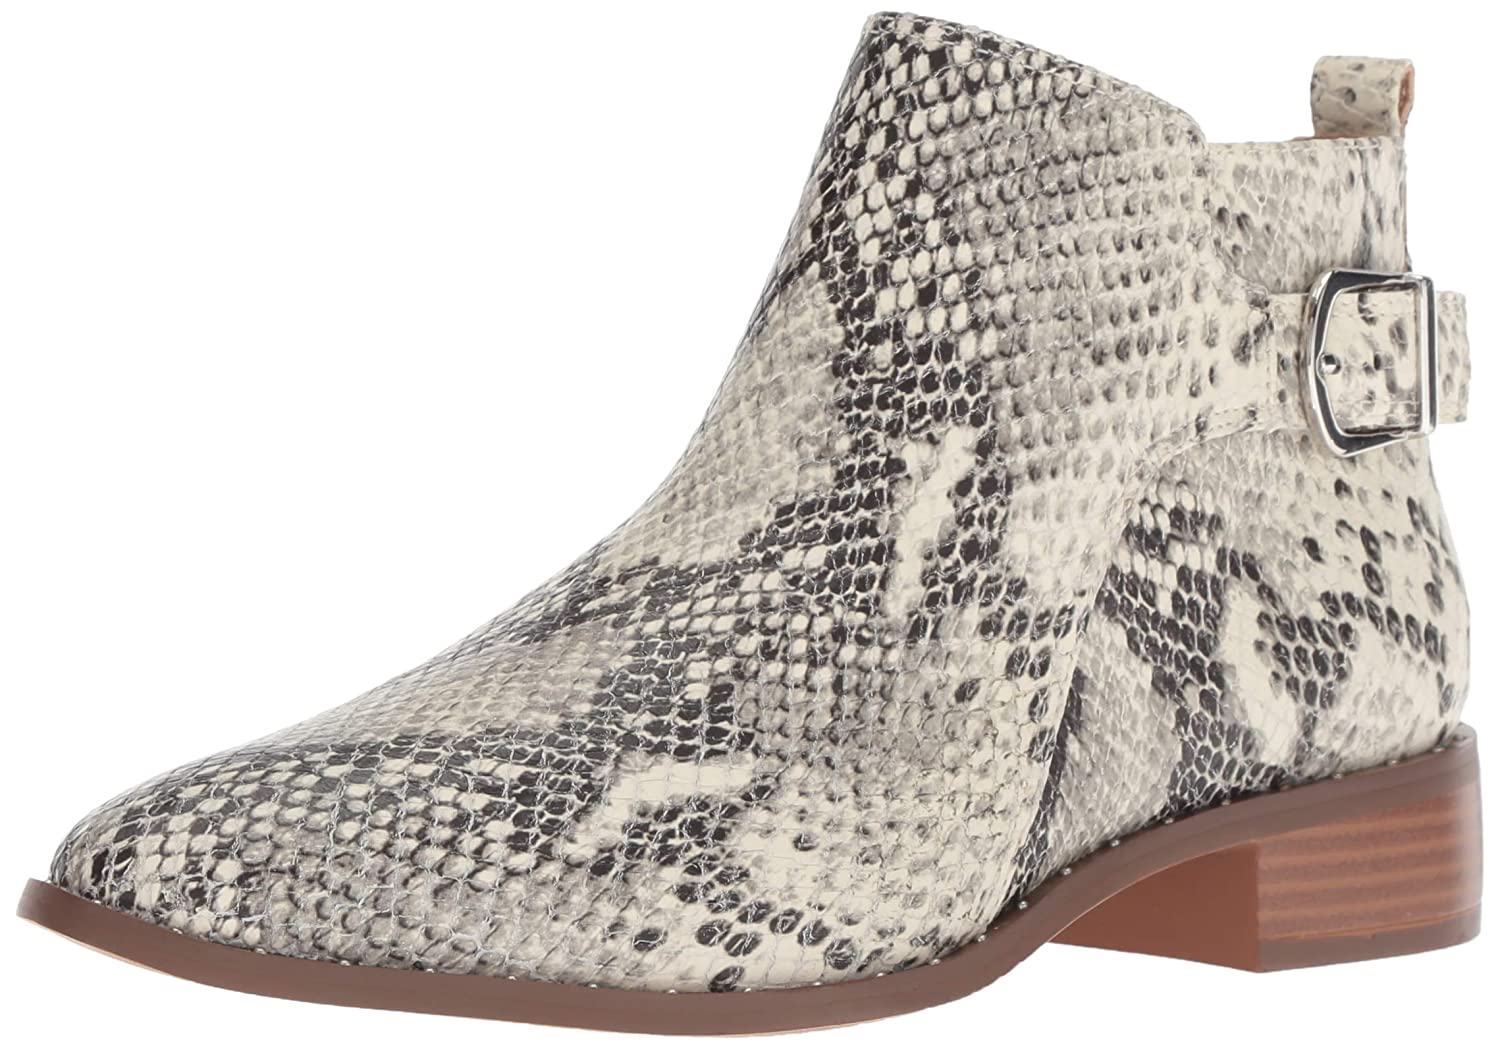 STEVEN by Steve Madden Womens Chavi Ankle Boot